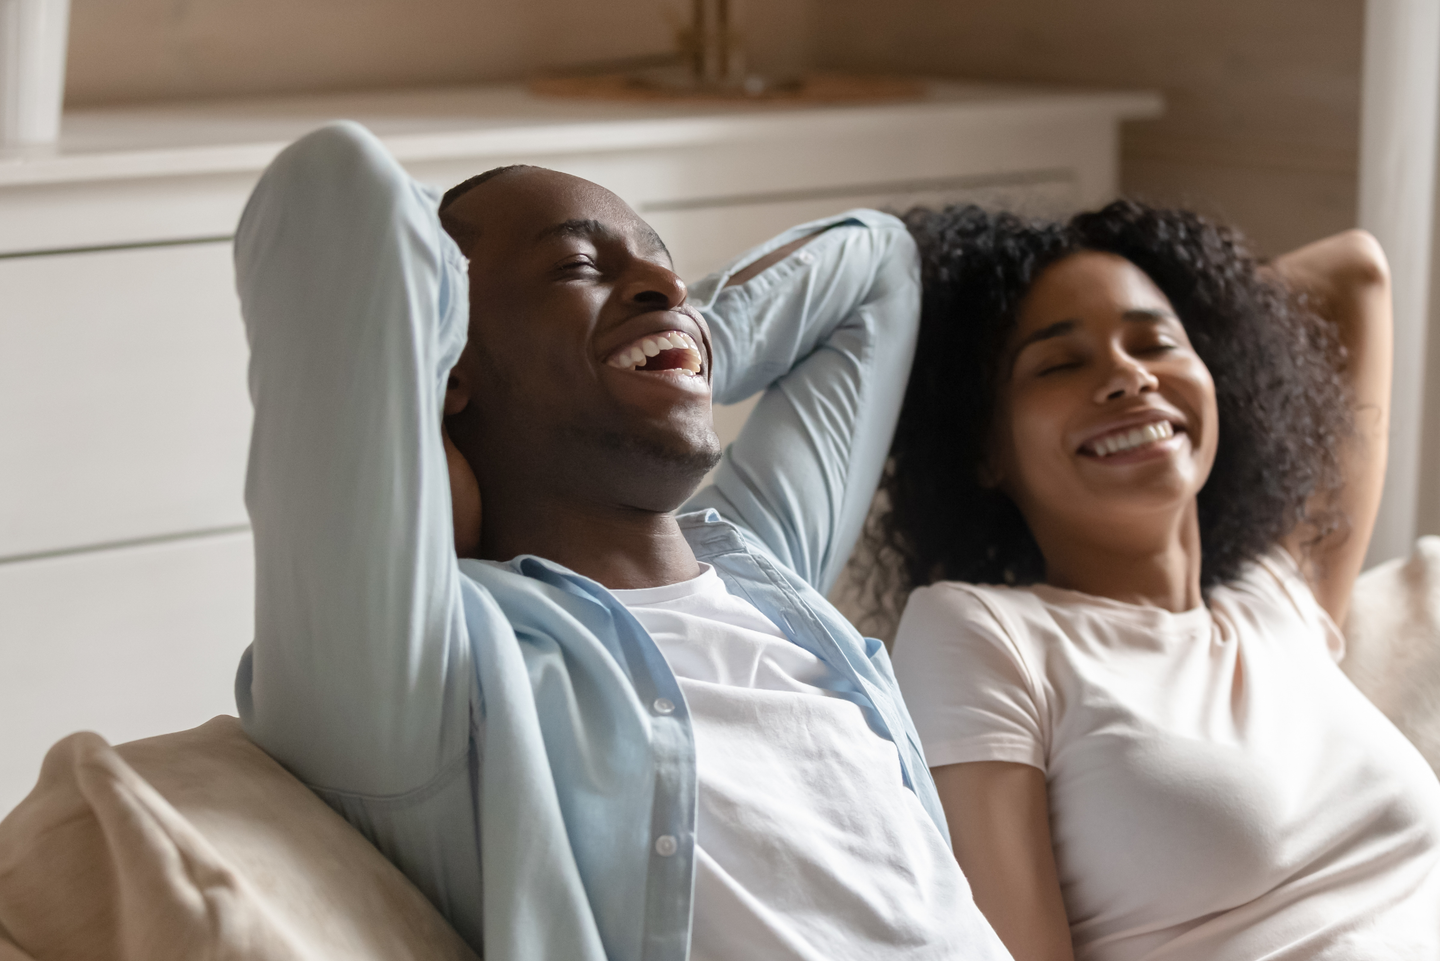 Black couple on a couch comfortably relaxed and smiling. Elevate For Him contributes to increased confidence and energy.